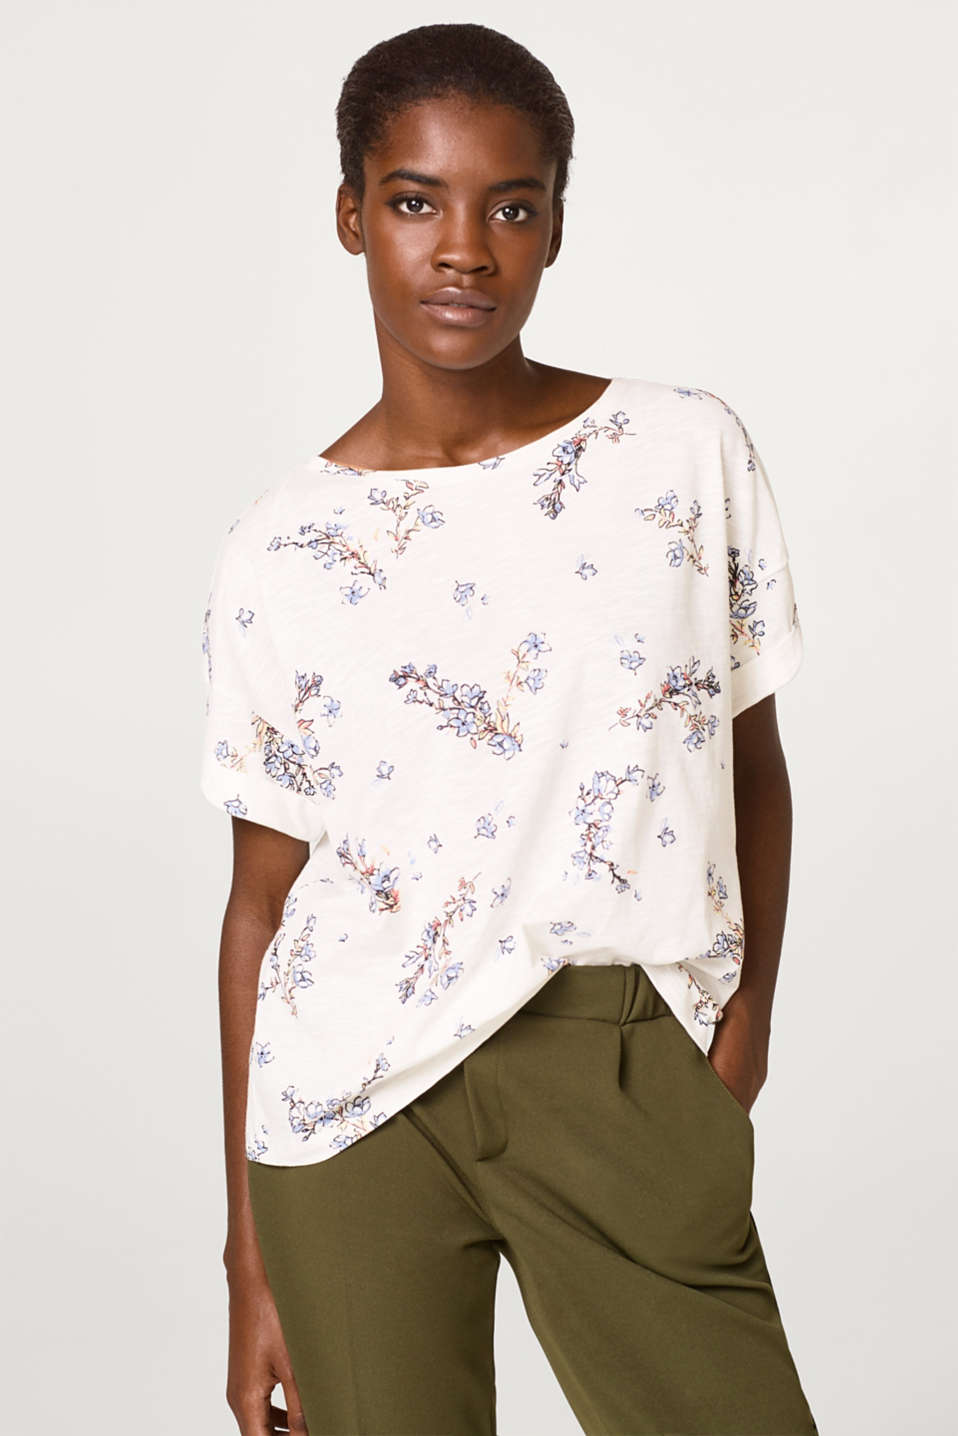 edc - Boxy T-shirt with a floral print, 100% cotton